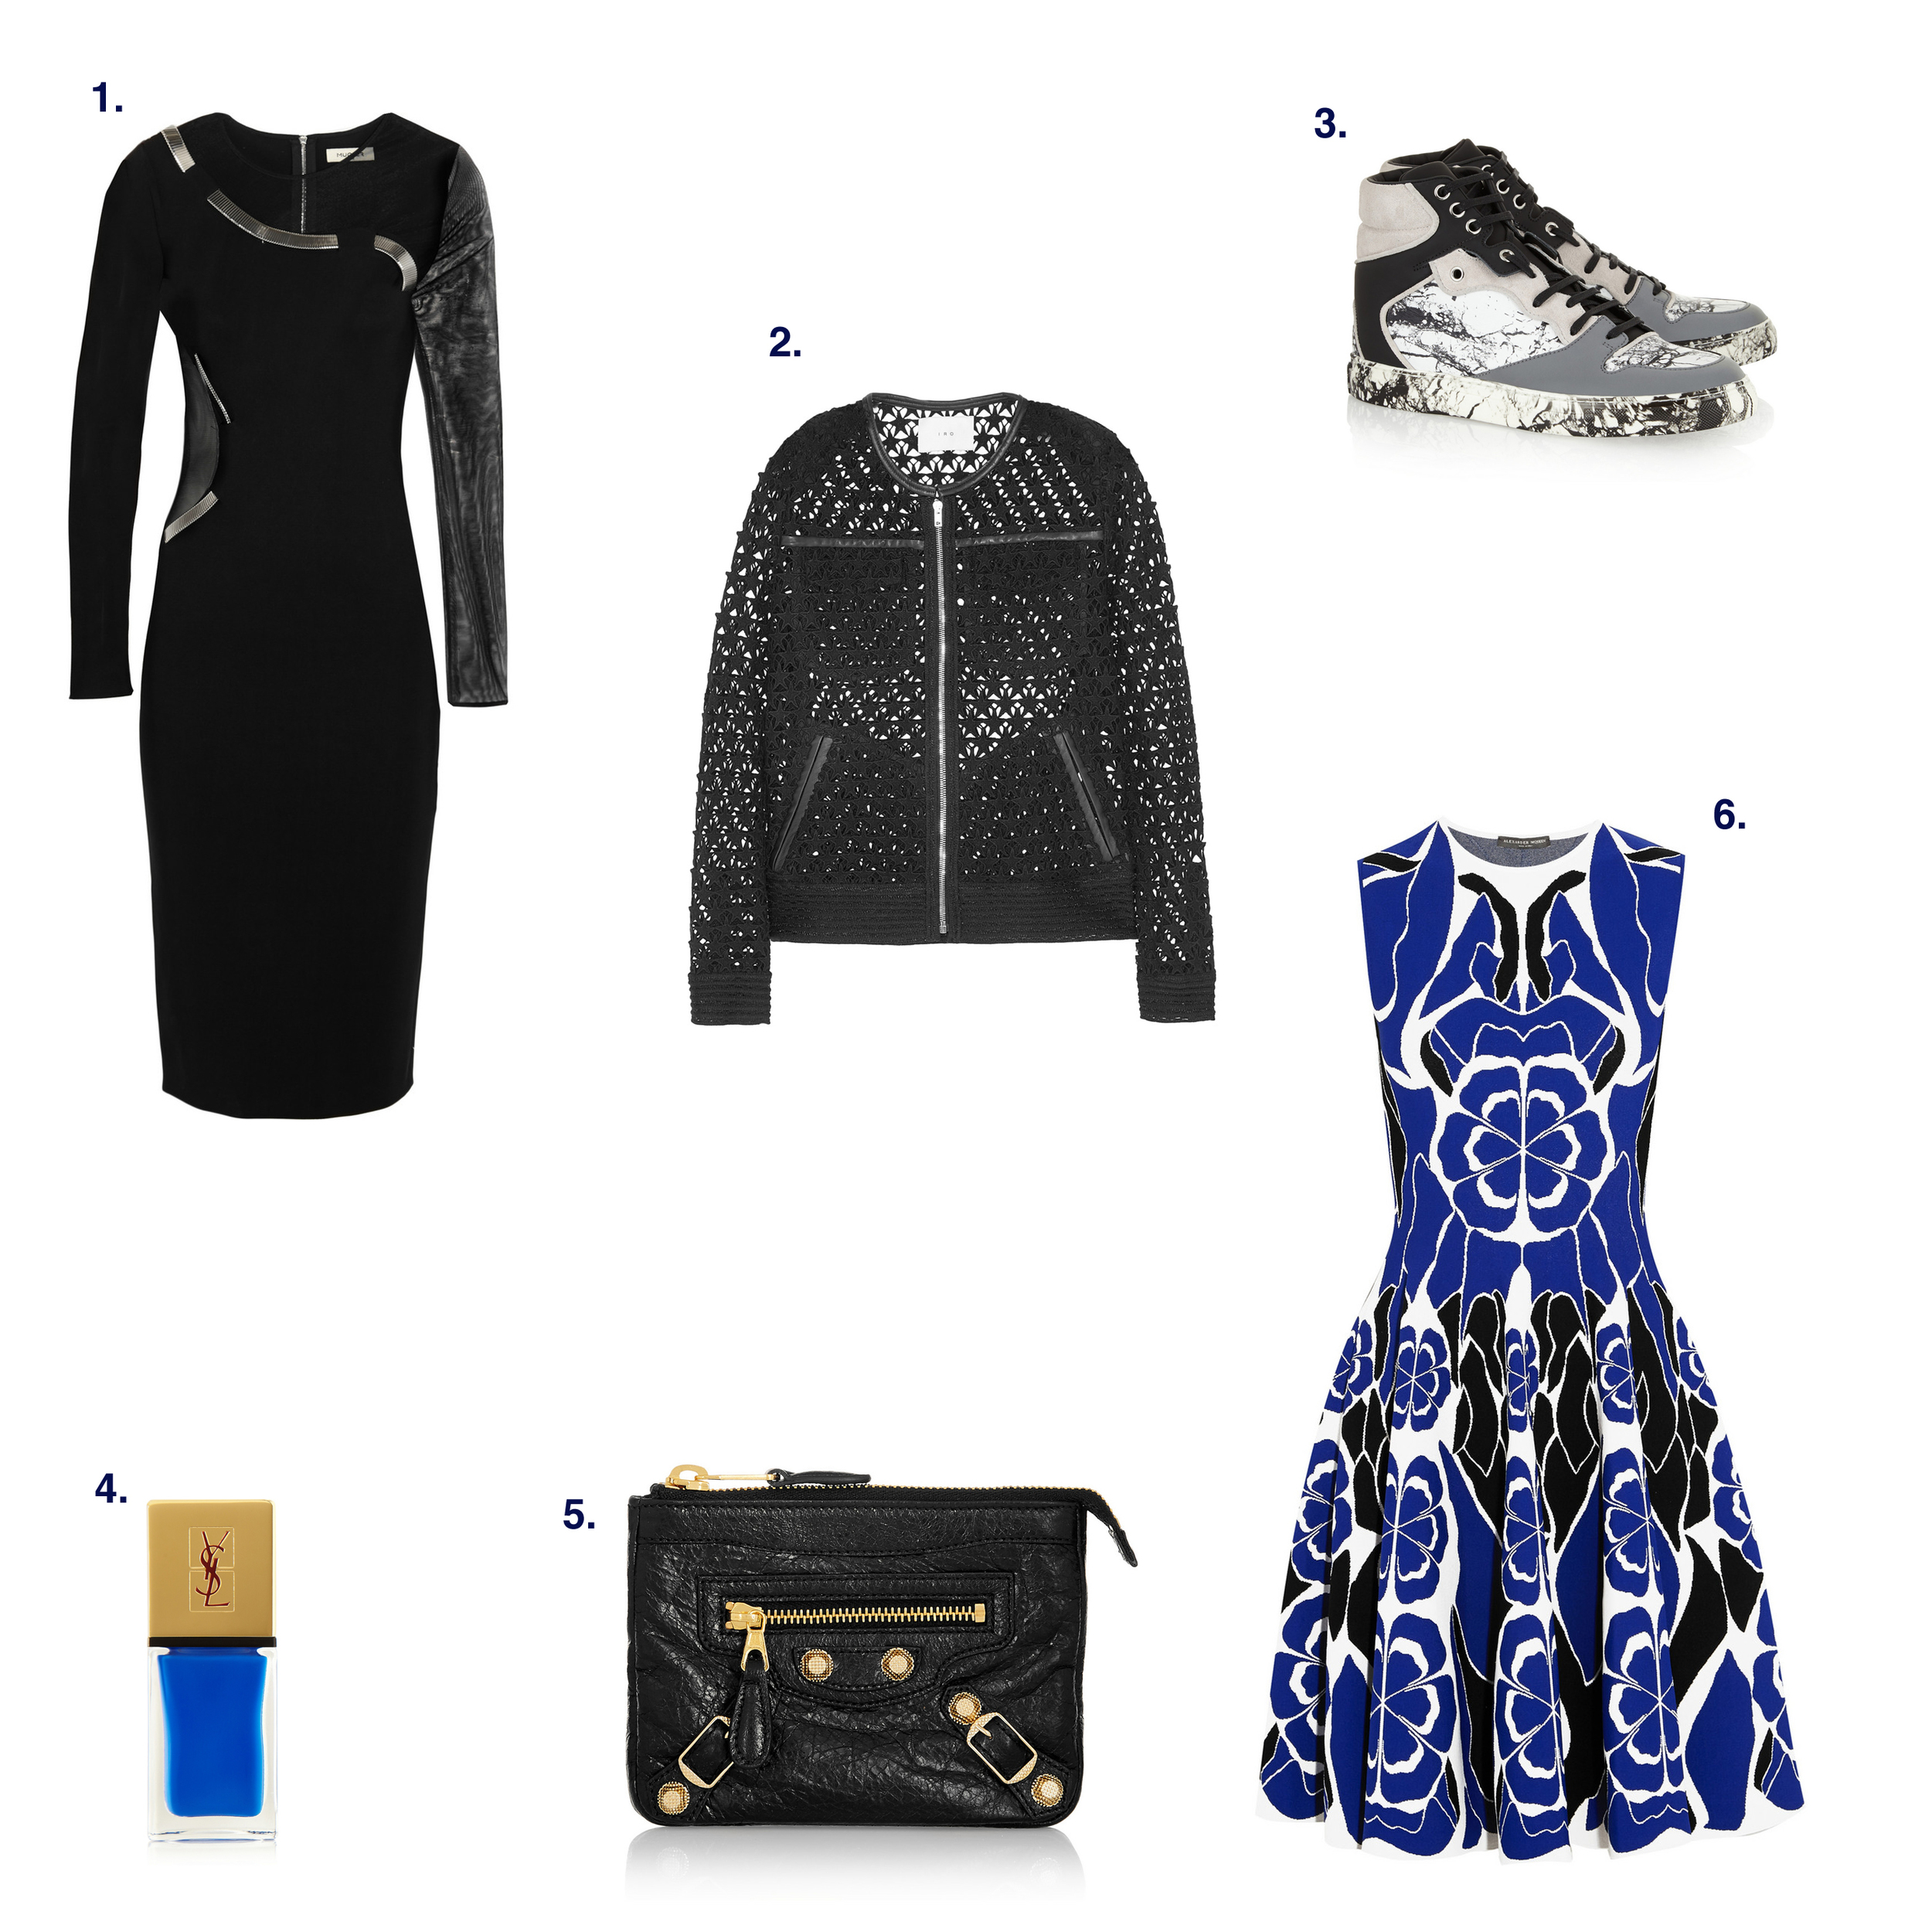 ALL ITEMS ON THIS BOARD CAN BE FOUND AT http://www.net-a-porter.com/